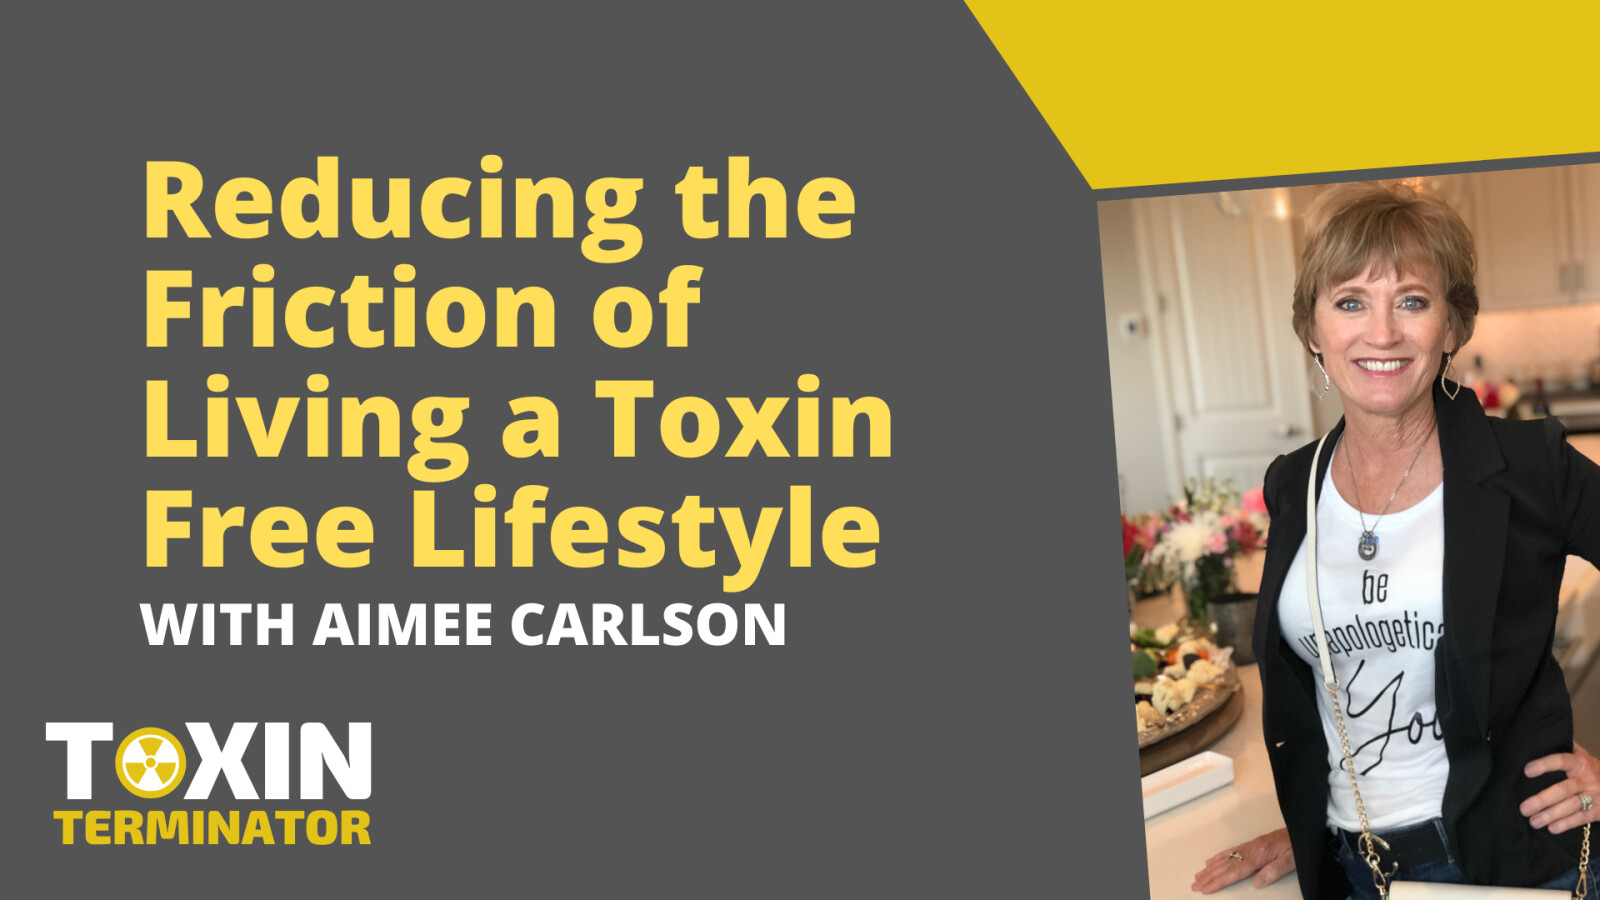 Reducing the Friction of Living a Toxin Free Lifestyle